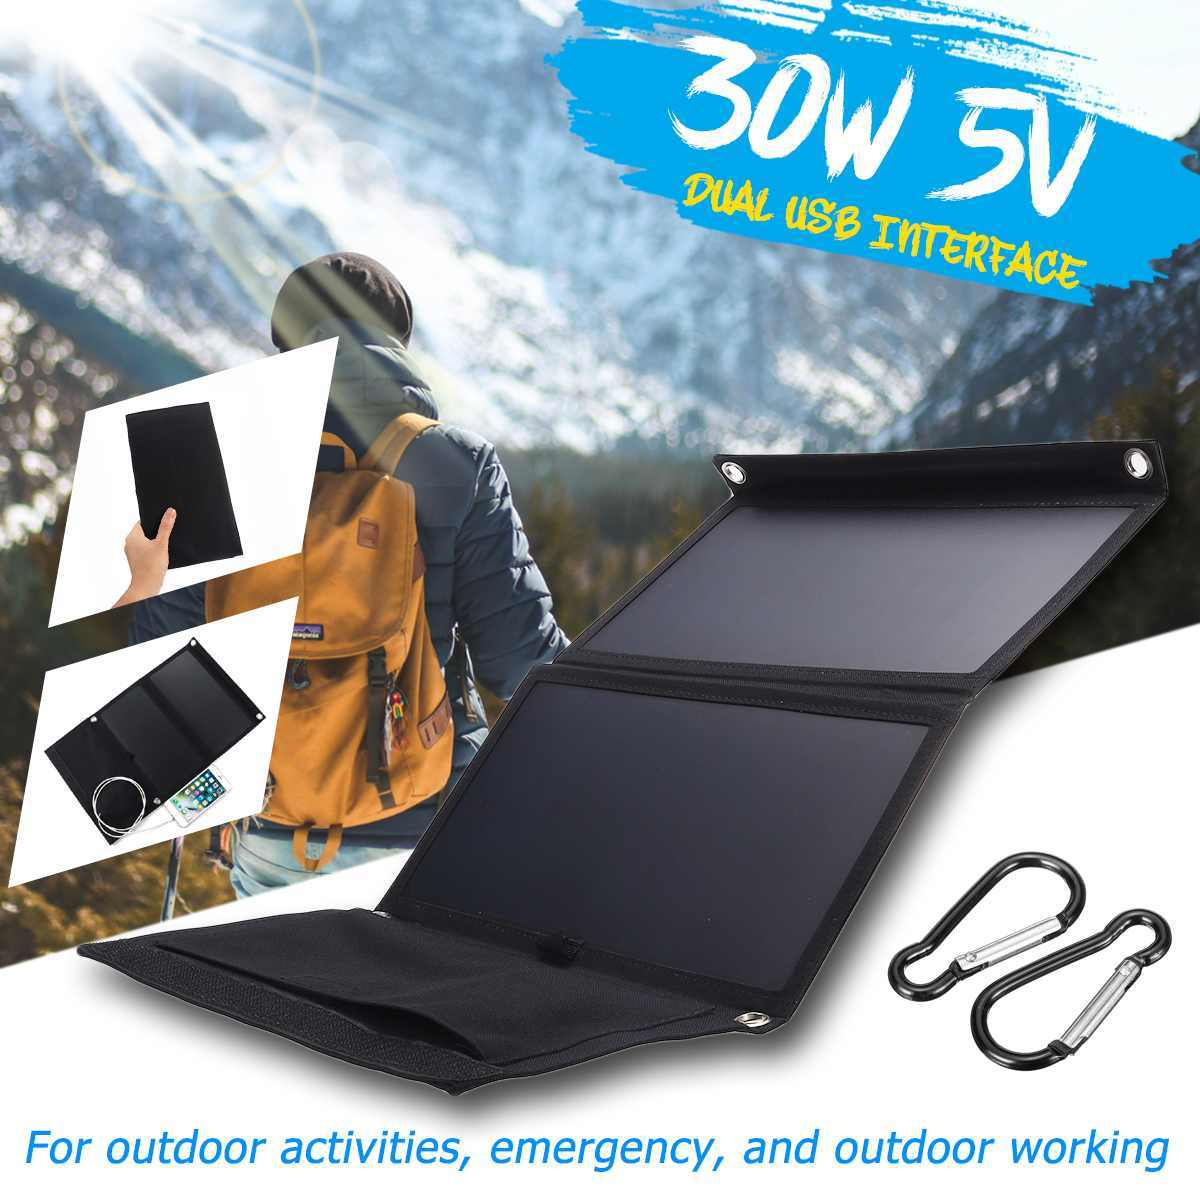 LEORY Sunpower 30W 5V Foldable Solar Panel Charger Solar Cells Power Bank Dual USB Camouflage Backpack Camping Hiking